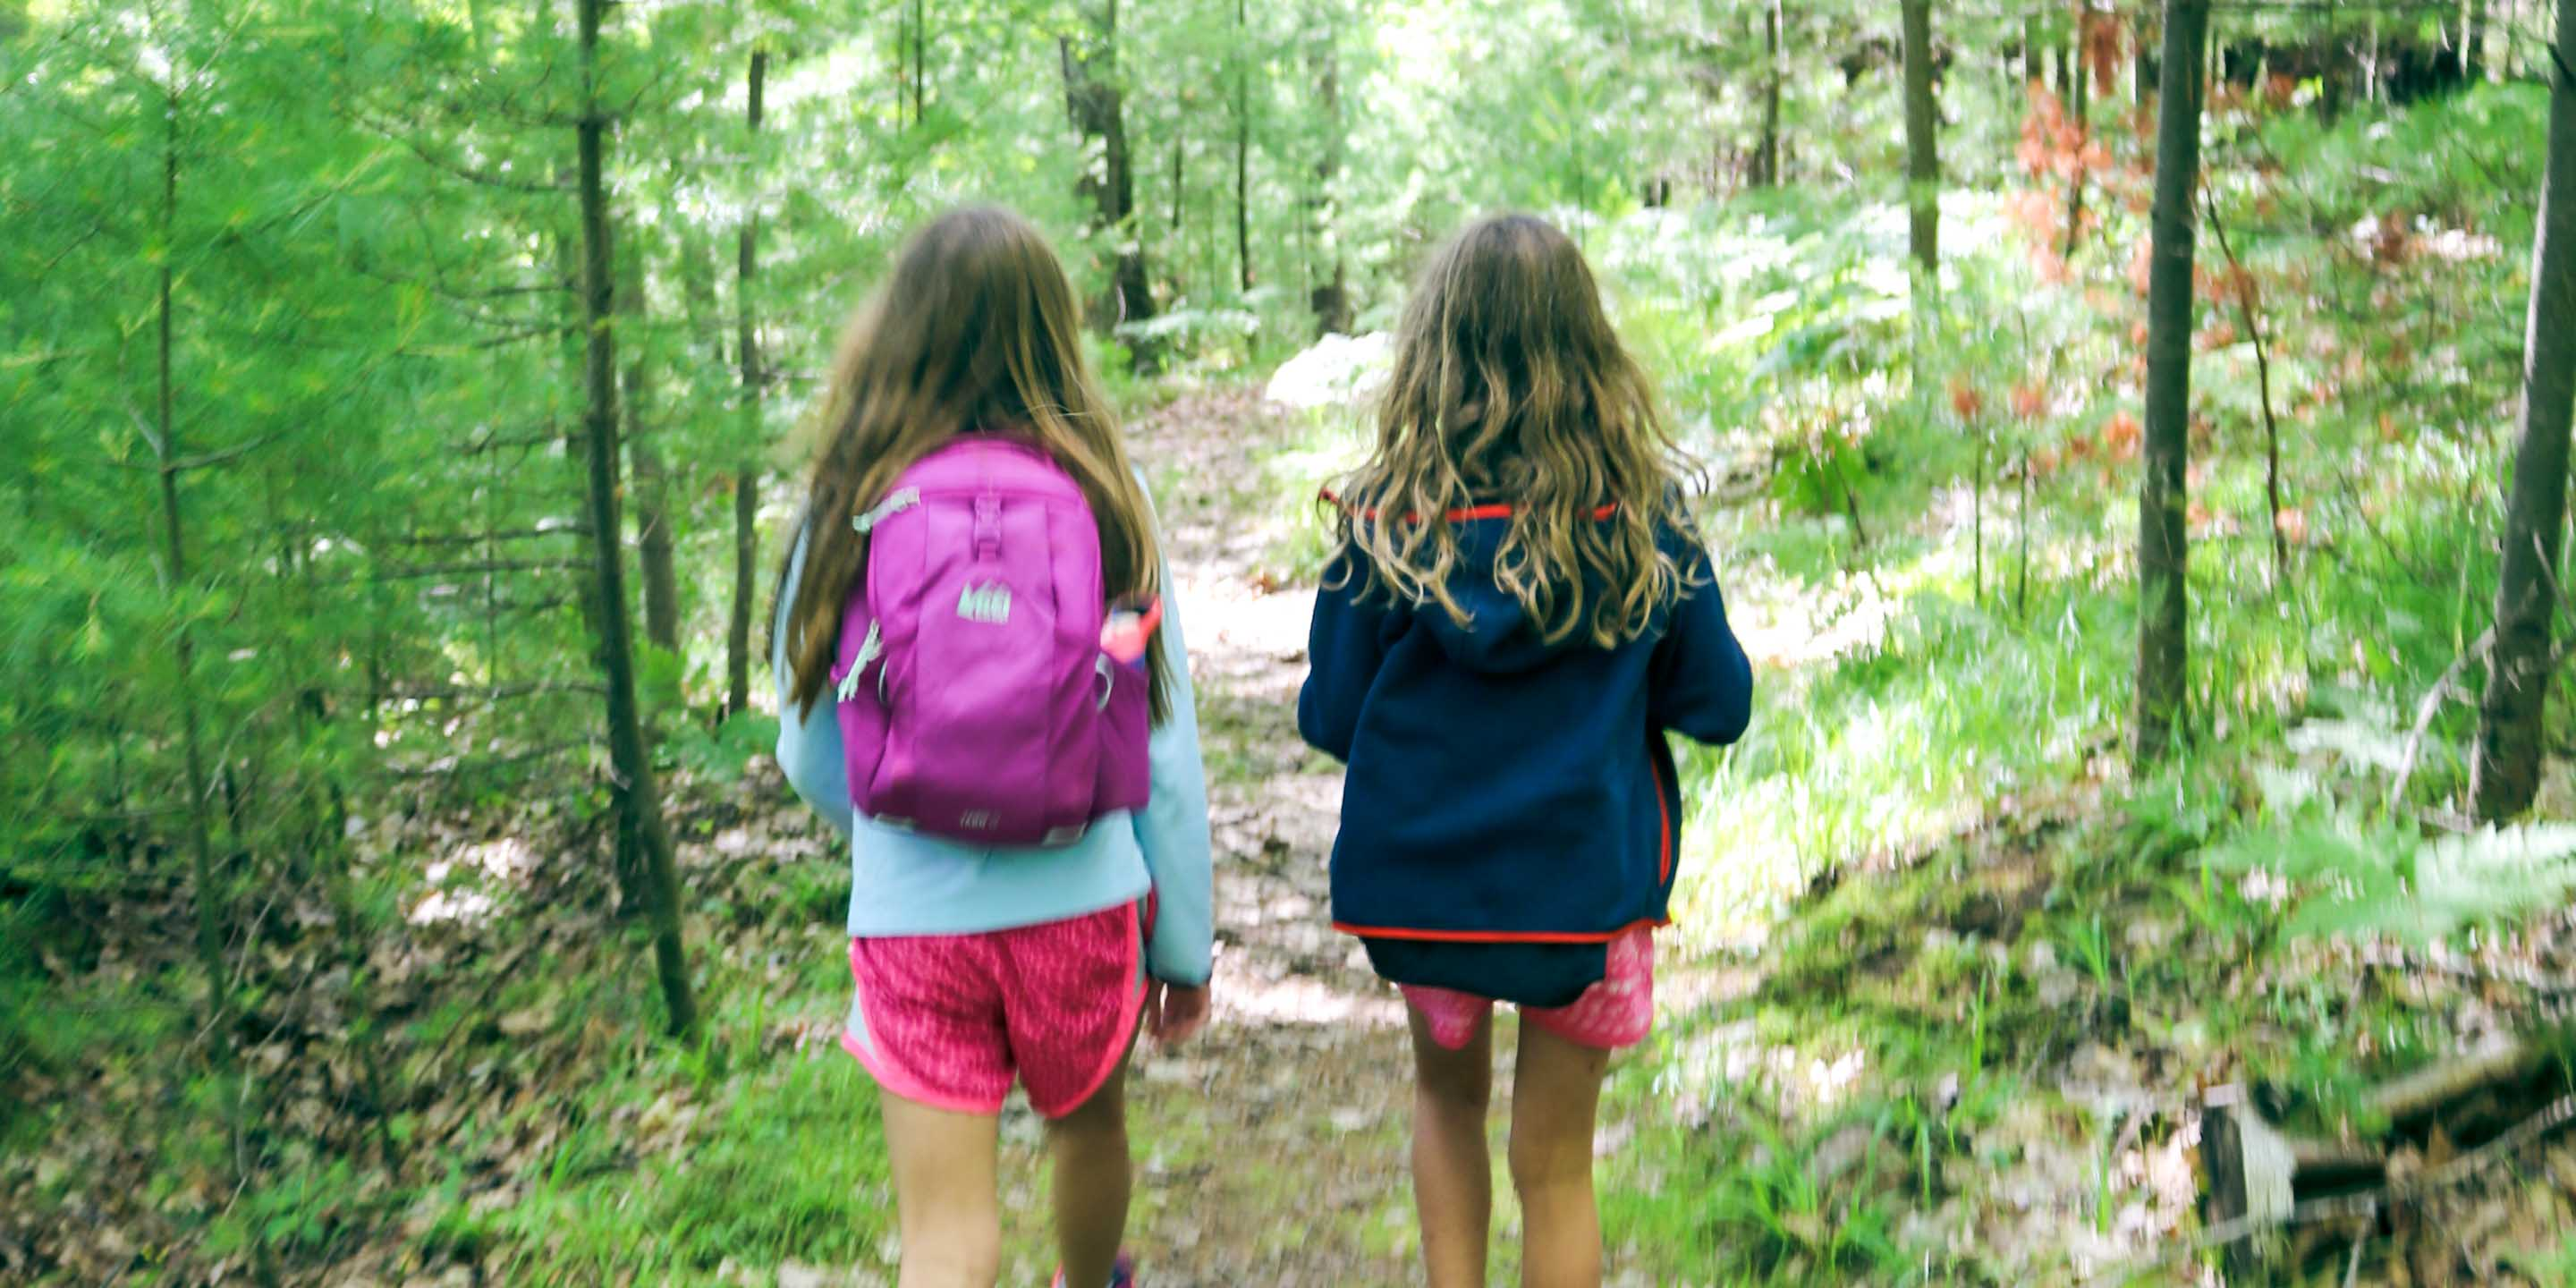 Young campers walk down trail on day hike